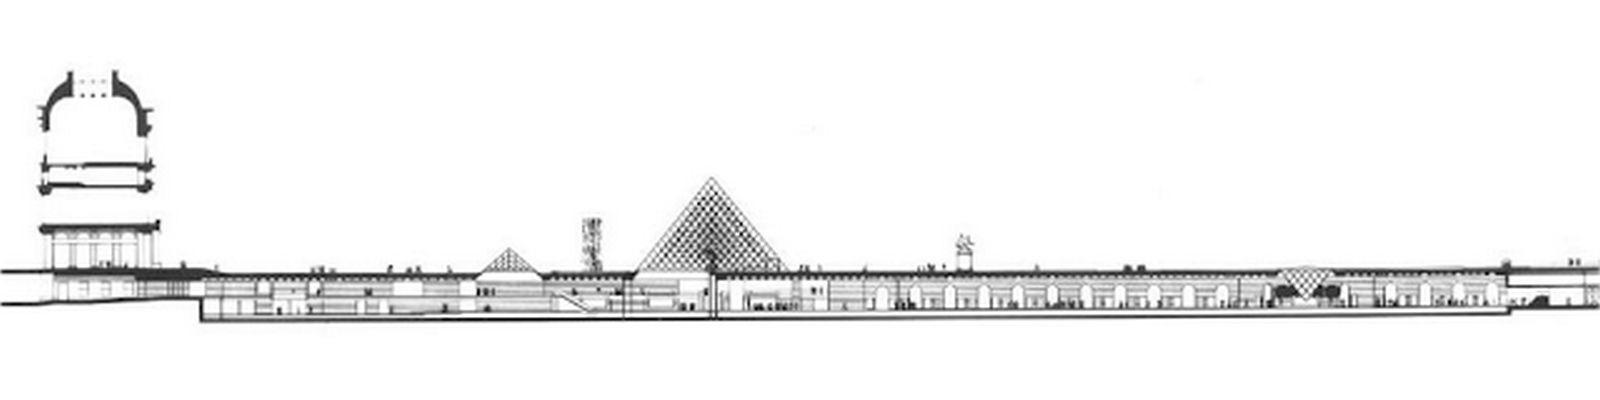 Louvre Pyramid by I.M, Pei: The Glass Pyramid- Sheet18